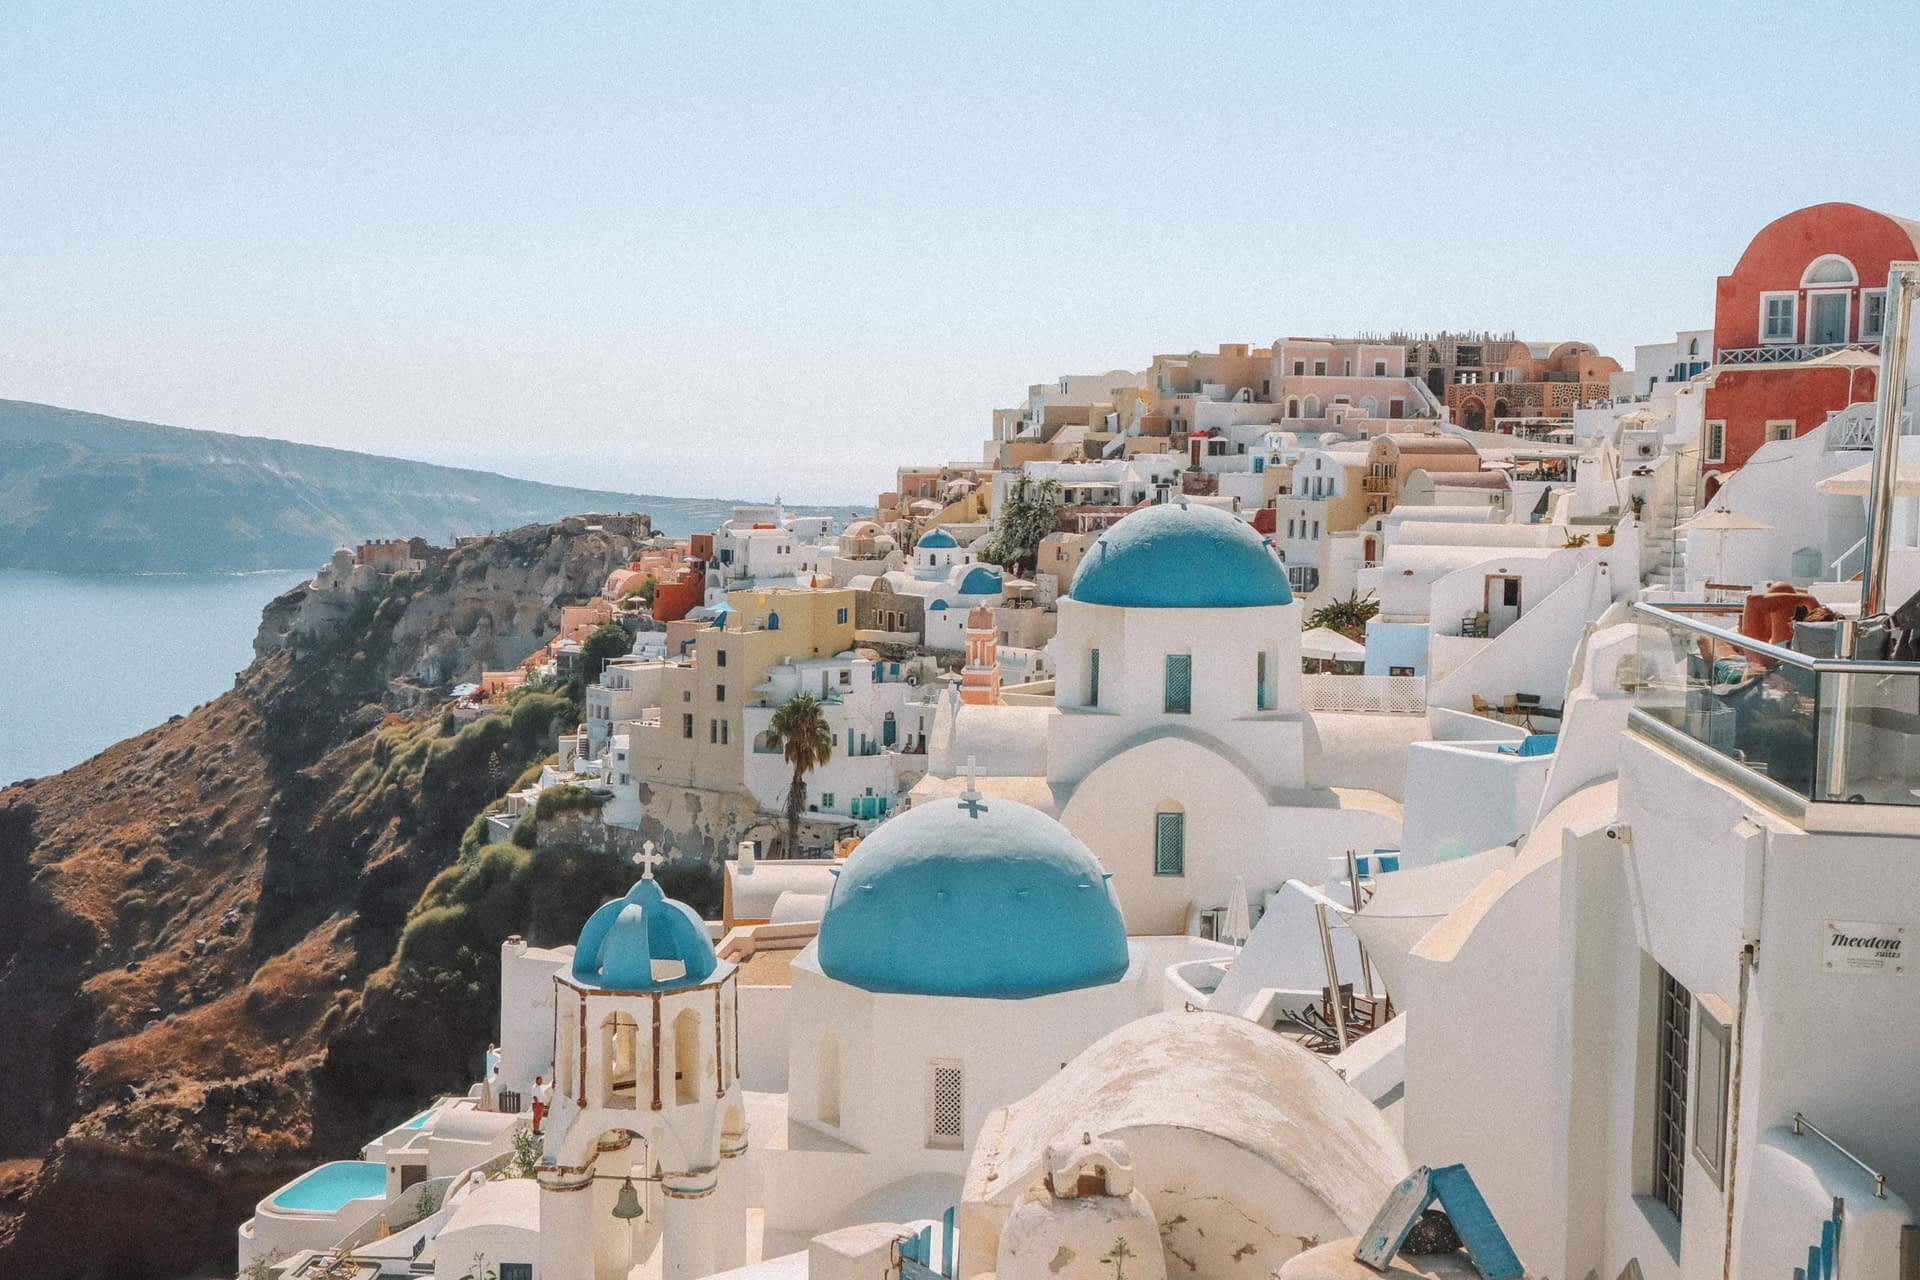 A view of blue domed churches in Oia